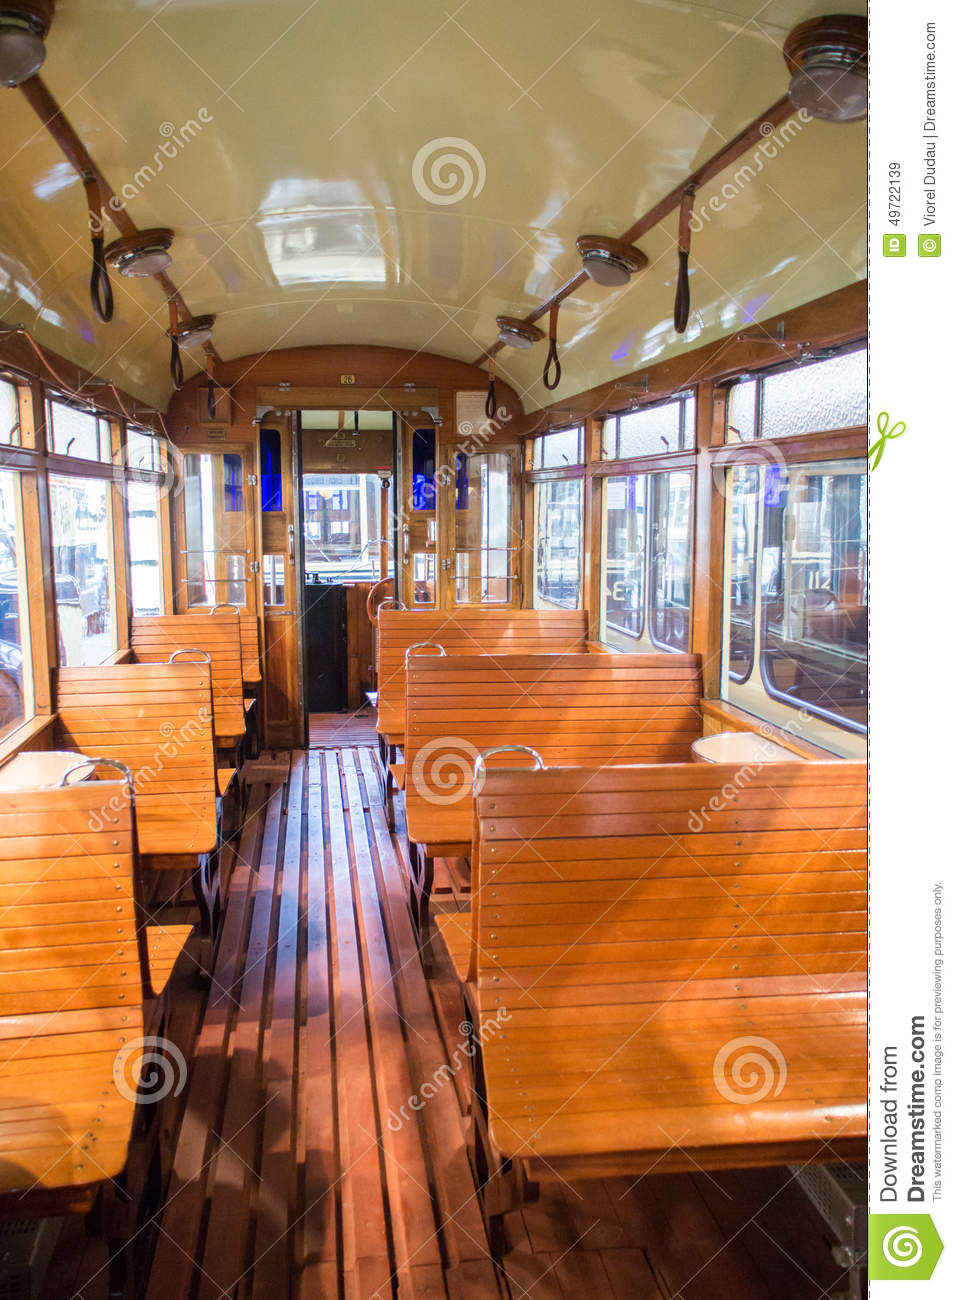 vintage tram car interior stock photo image 49722139. Black Bedroom Furniture Sets. Home Design Ideas